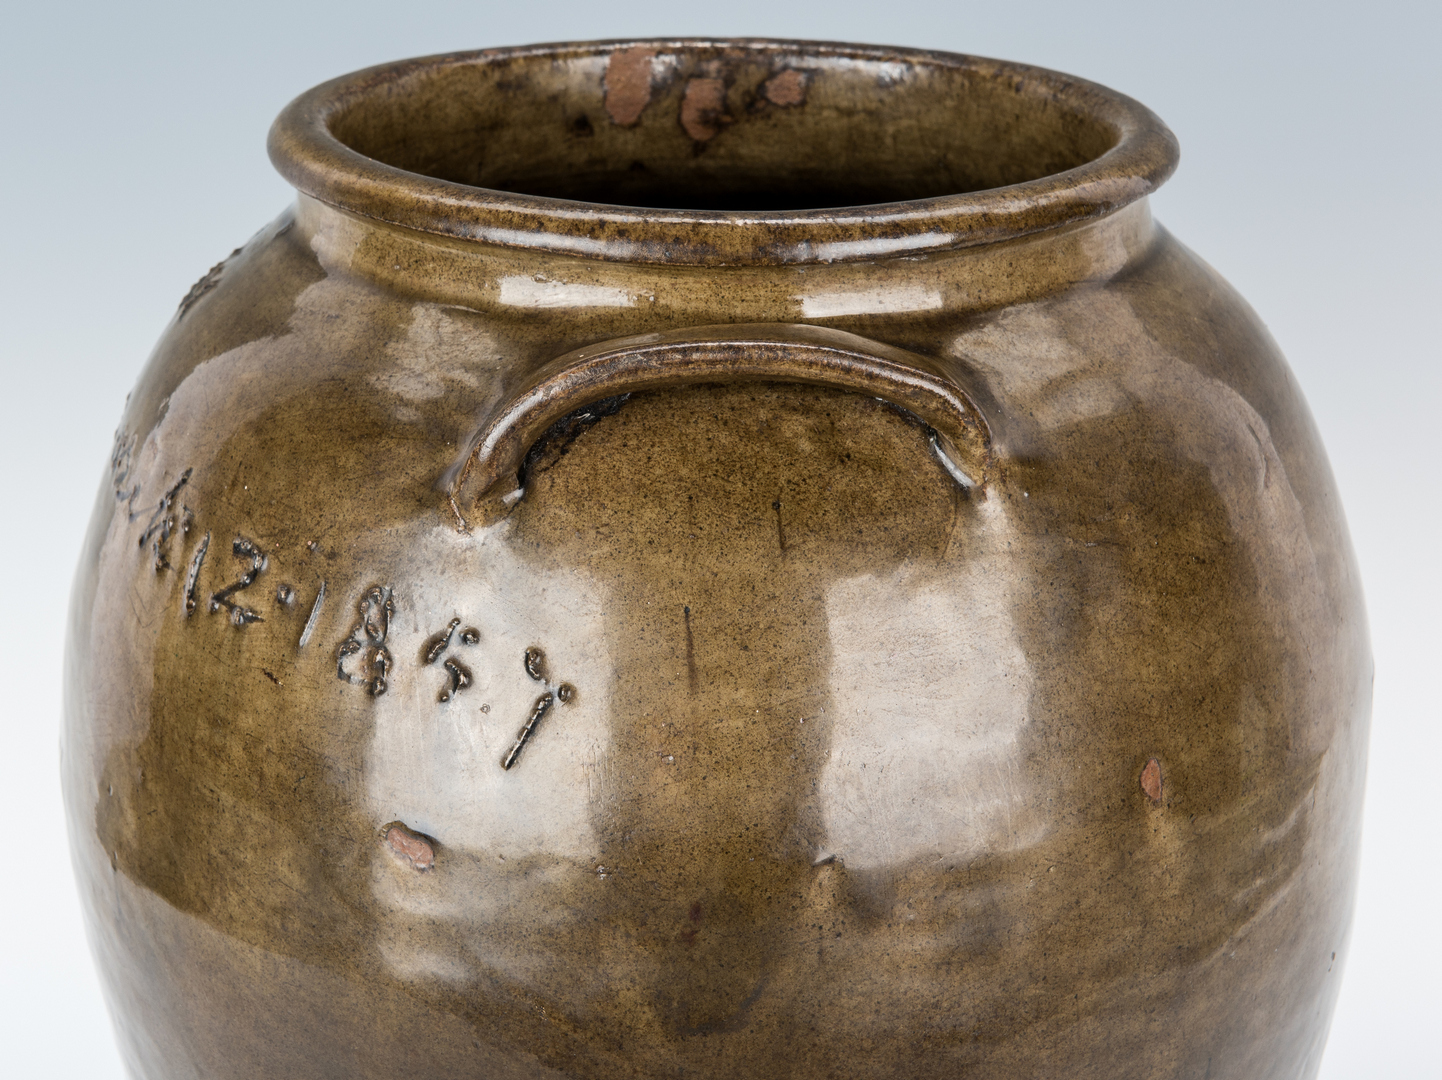 Lot 189: Lewis Miles Edgefield Pottery Jar, Signed & Dated 1857